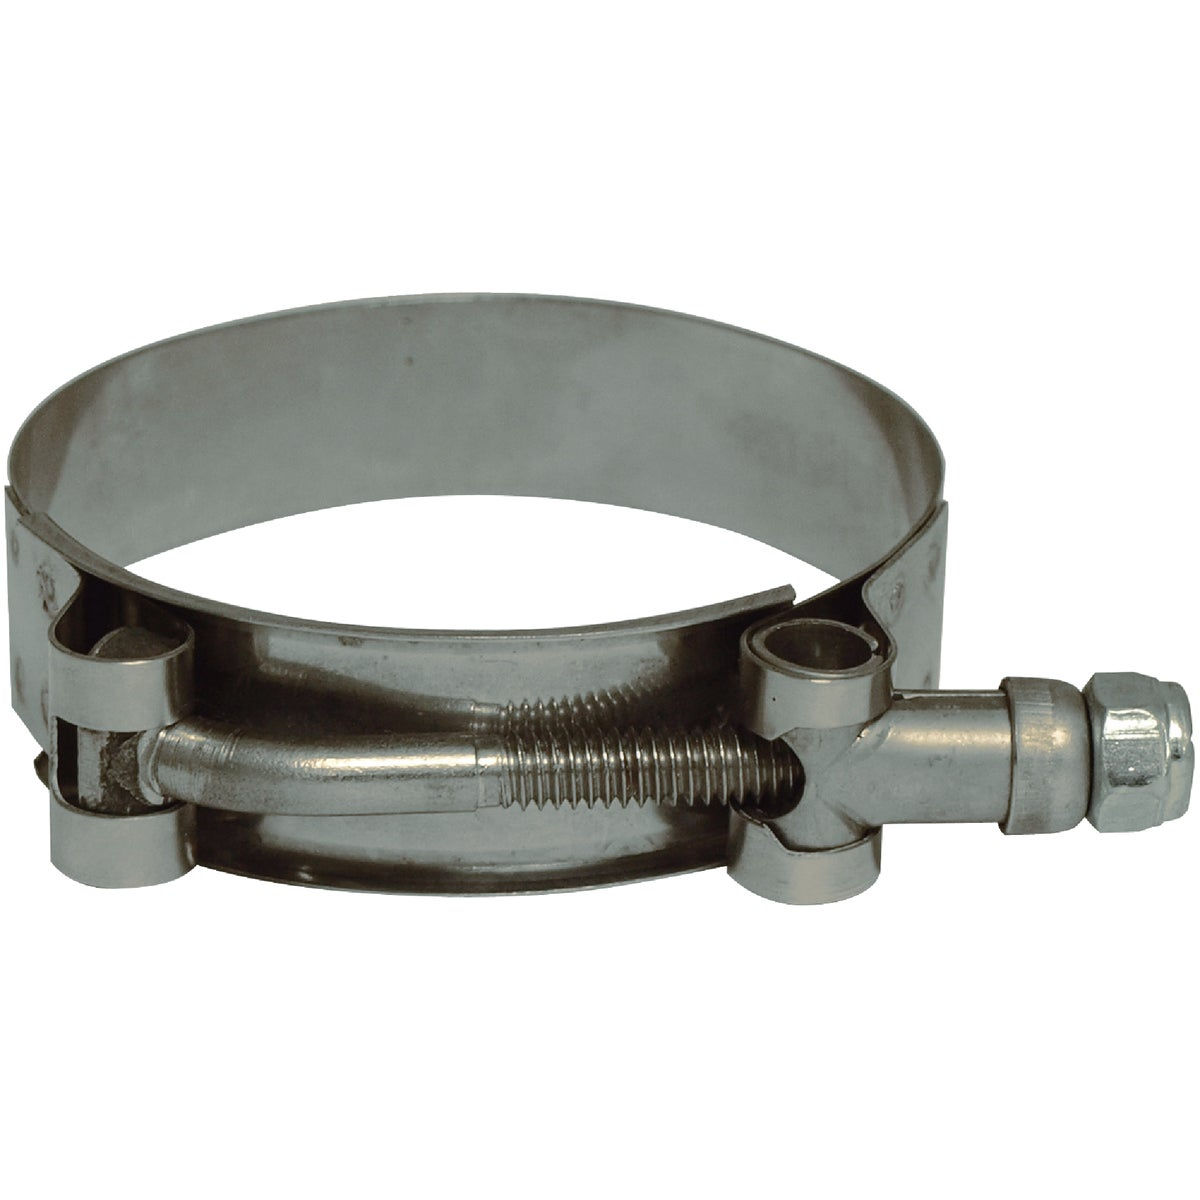 2-5/16-2-5/8 TBOLT CLAMP - 43082012 by Apache Hose Belting